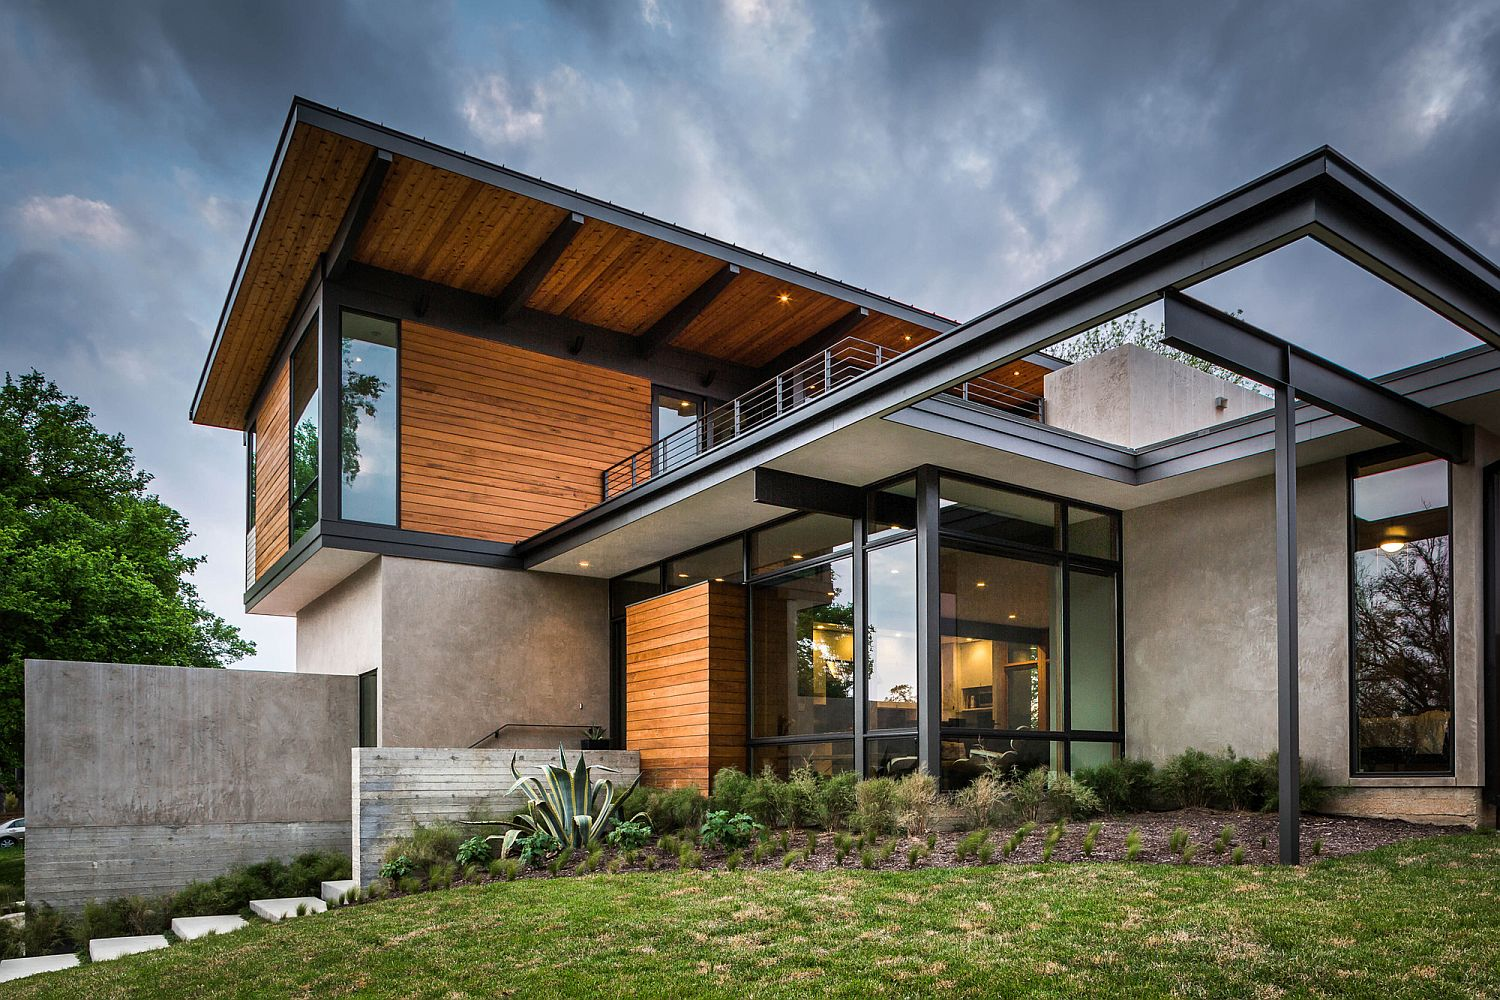 Contemporary hilltop house in Austin that is partially sunk into the ground